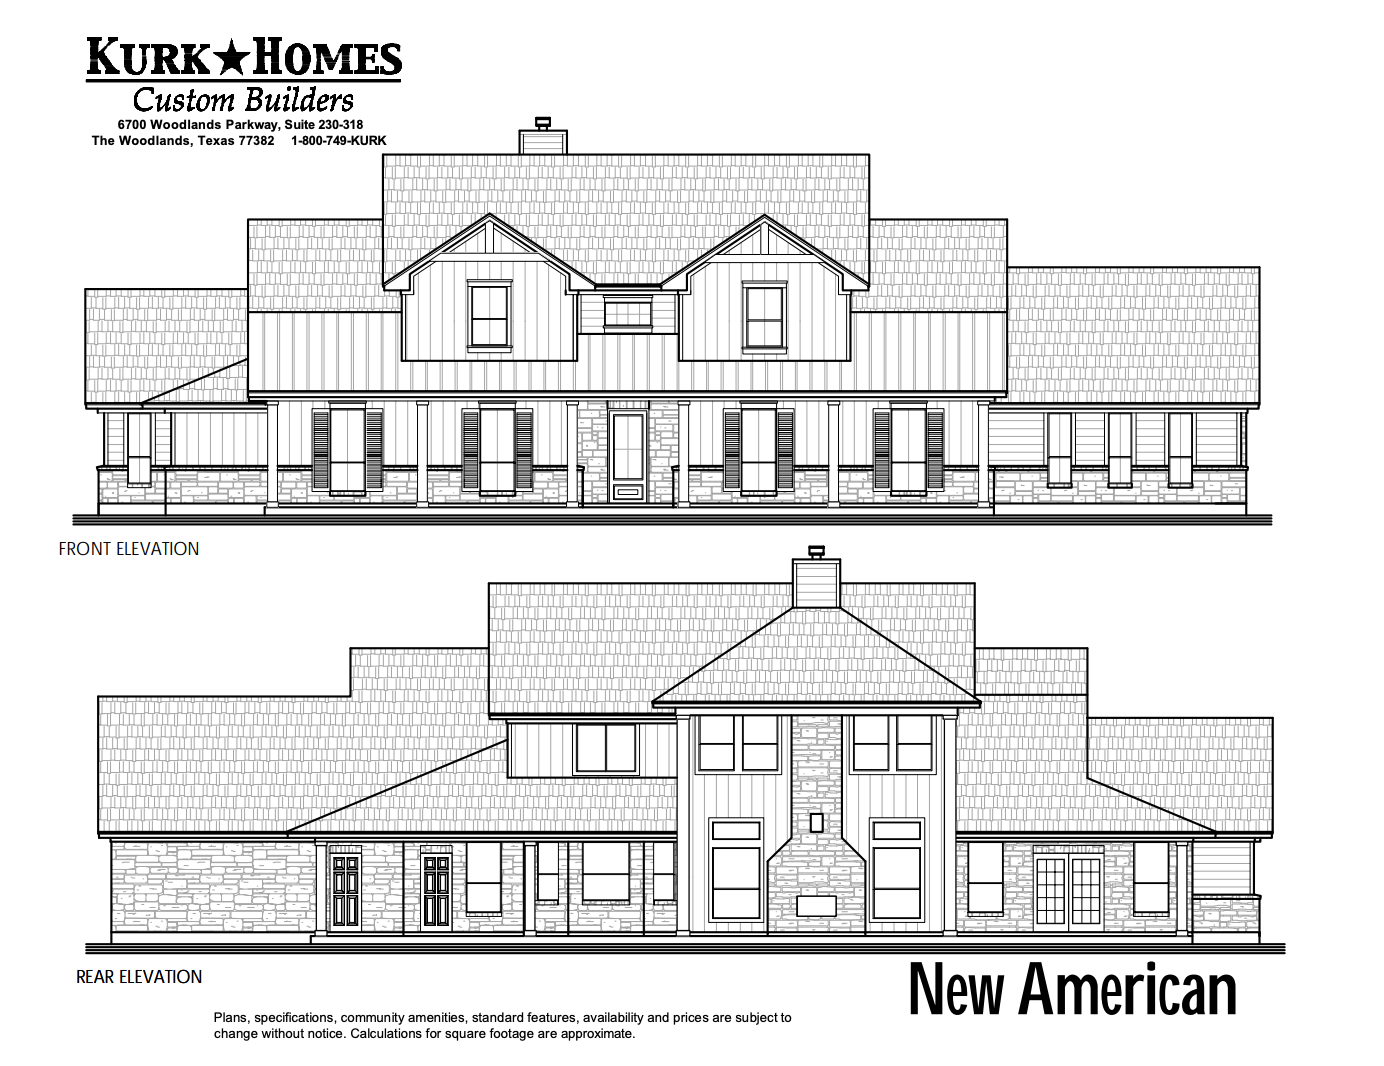 The New American - Exterior Elevation